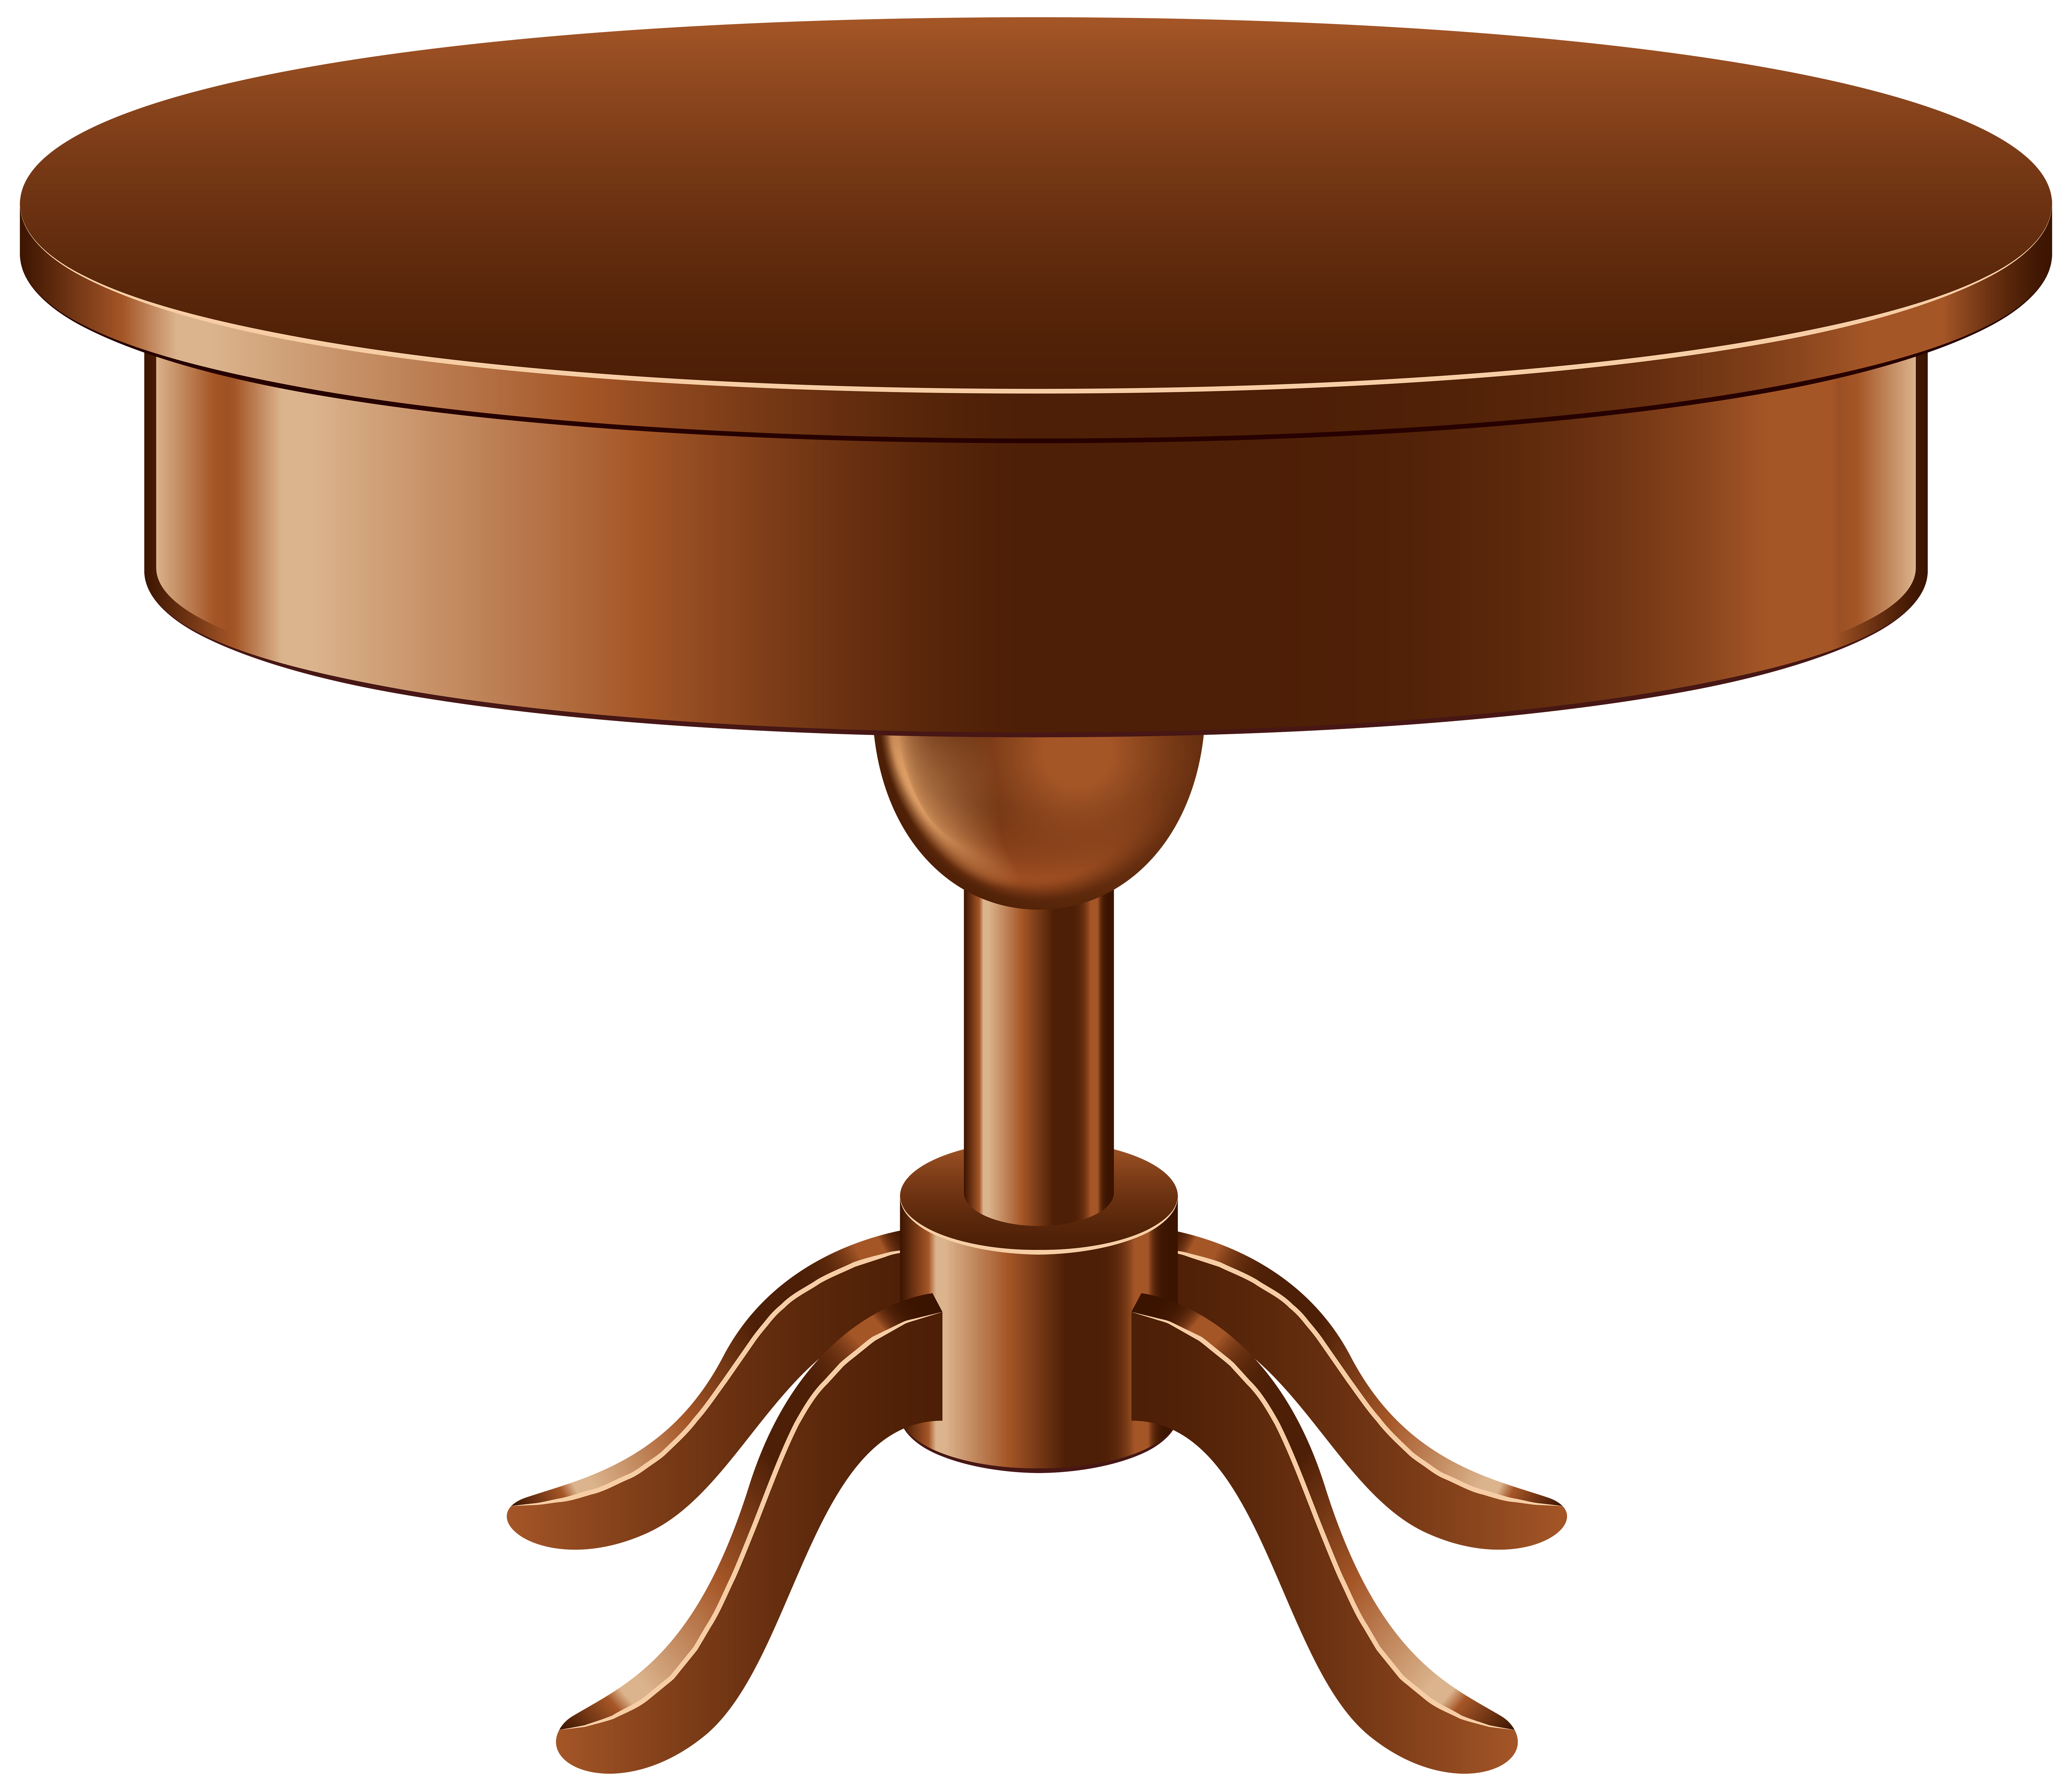 Table clipart #1, Download drawings